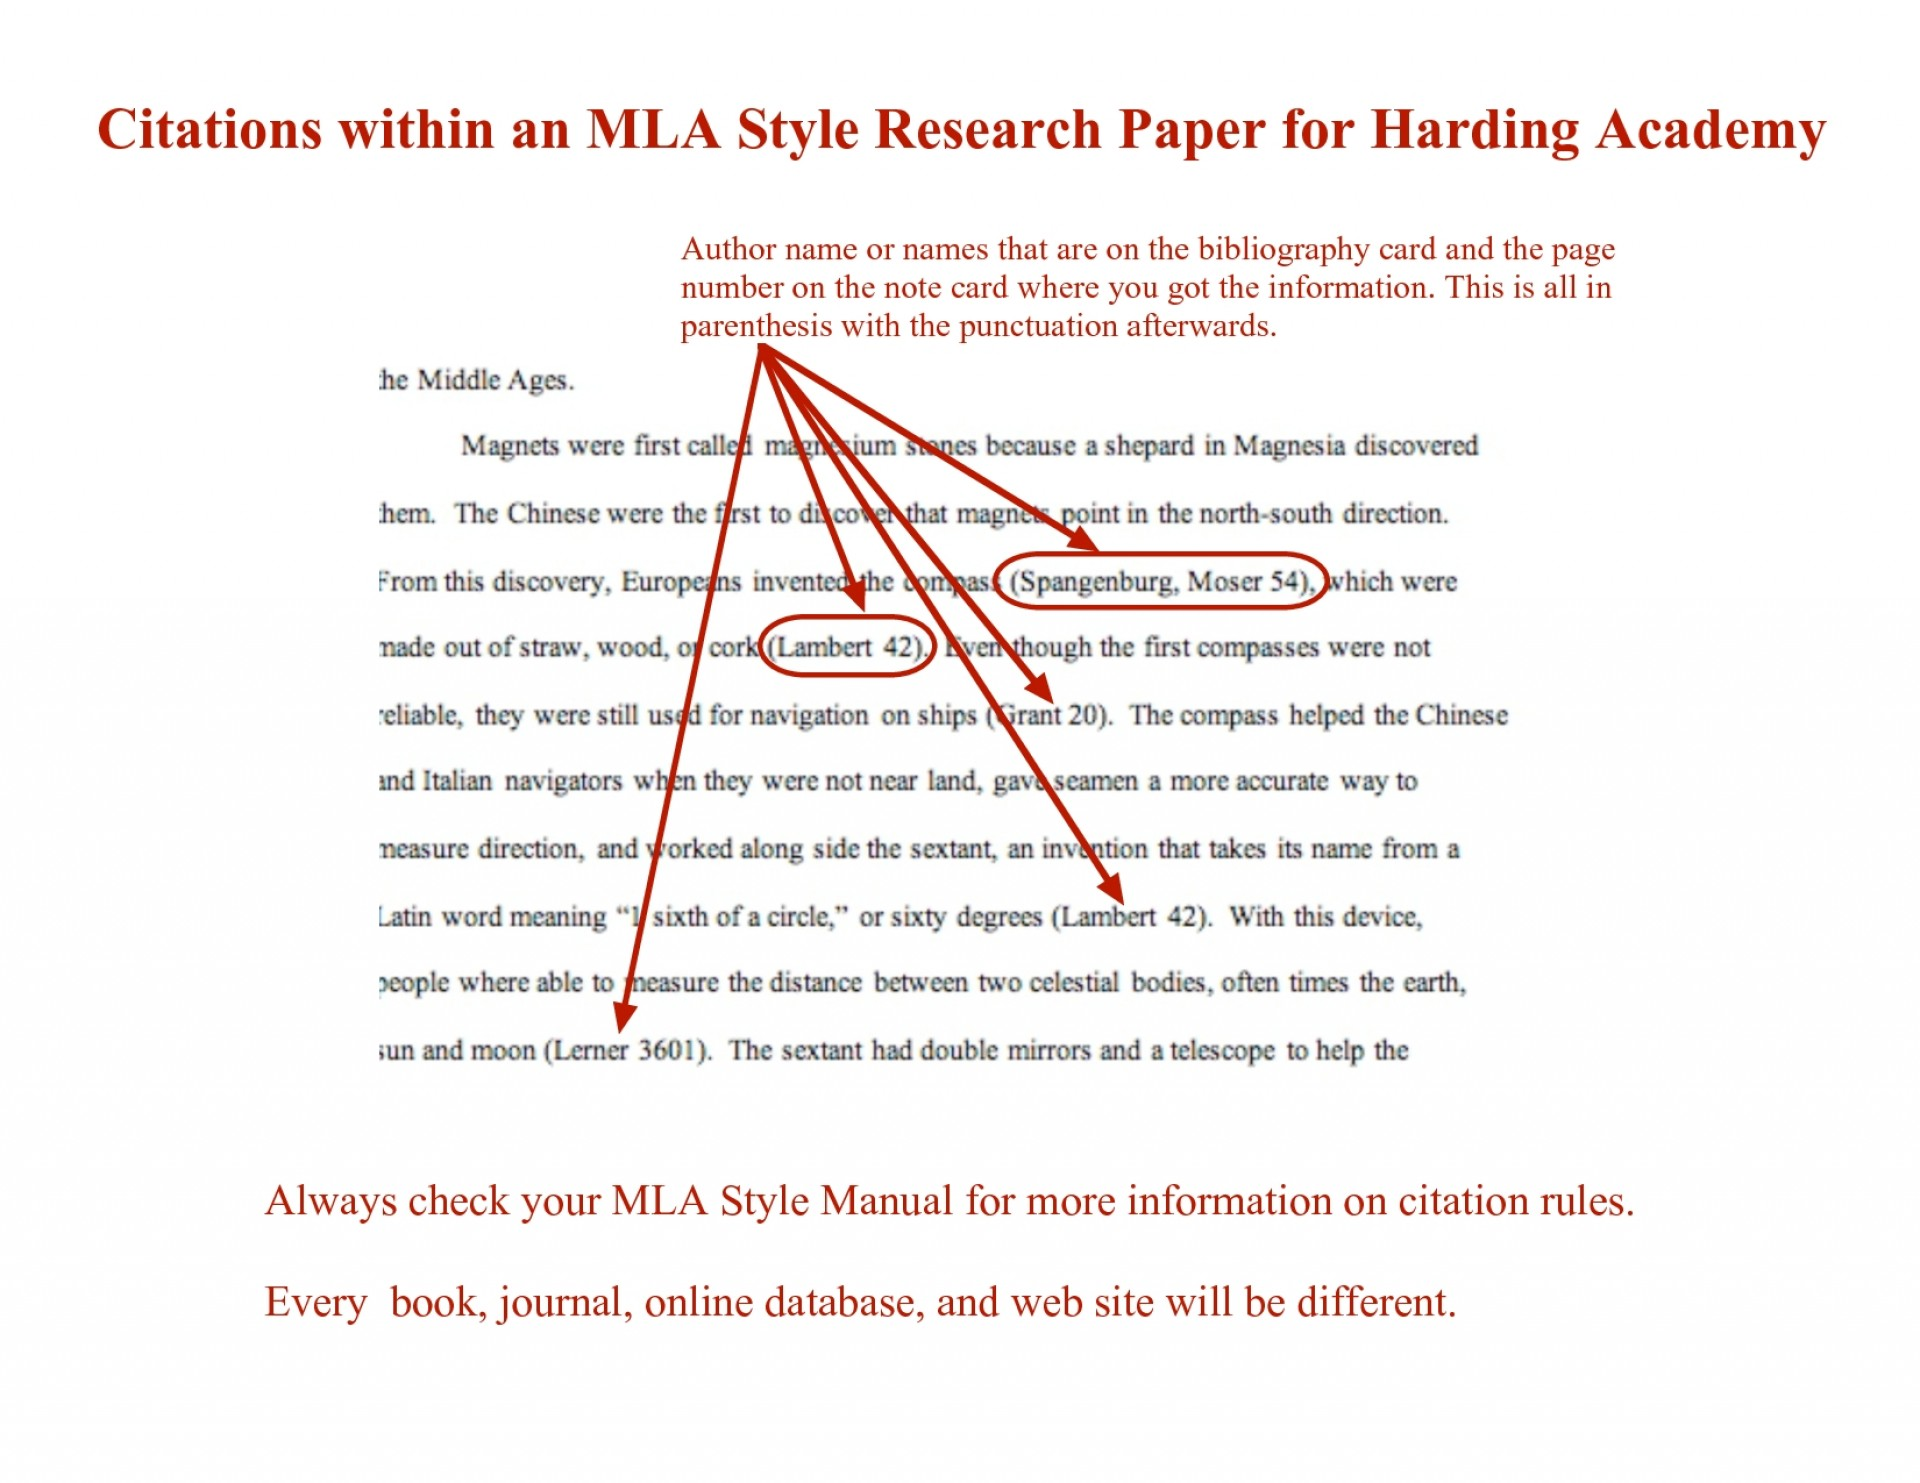 006 Essay Example How To Cite Sources In Citation Mla Twenty Hueandi Co Collection Of Solutions Quote From Website Stunning Research Pape Examples Essays Staggering Citing Apa Format 1920